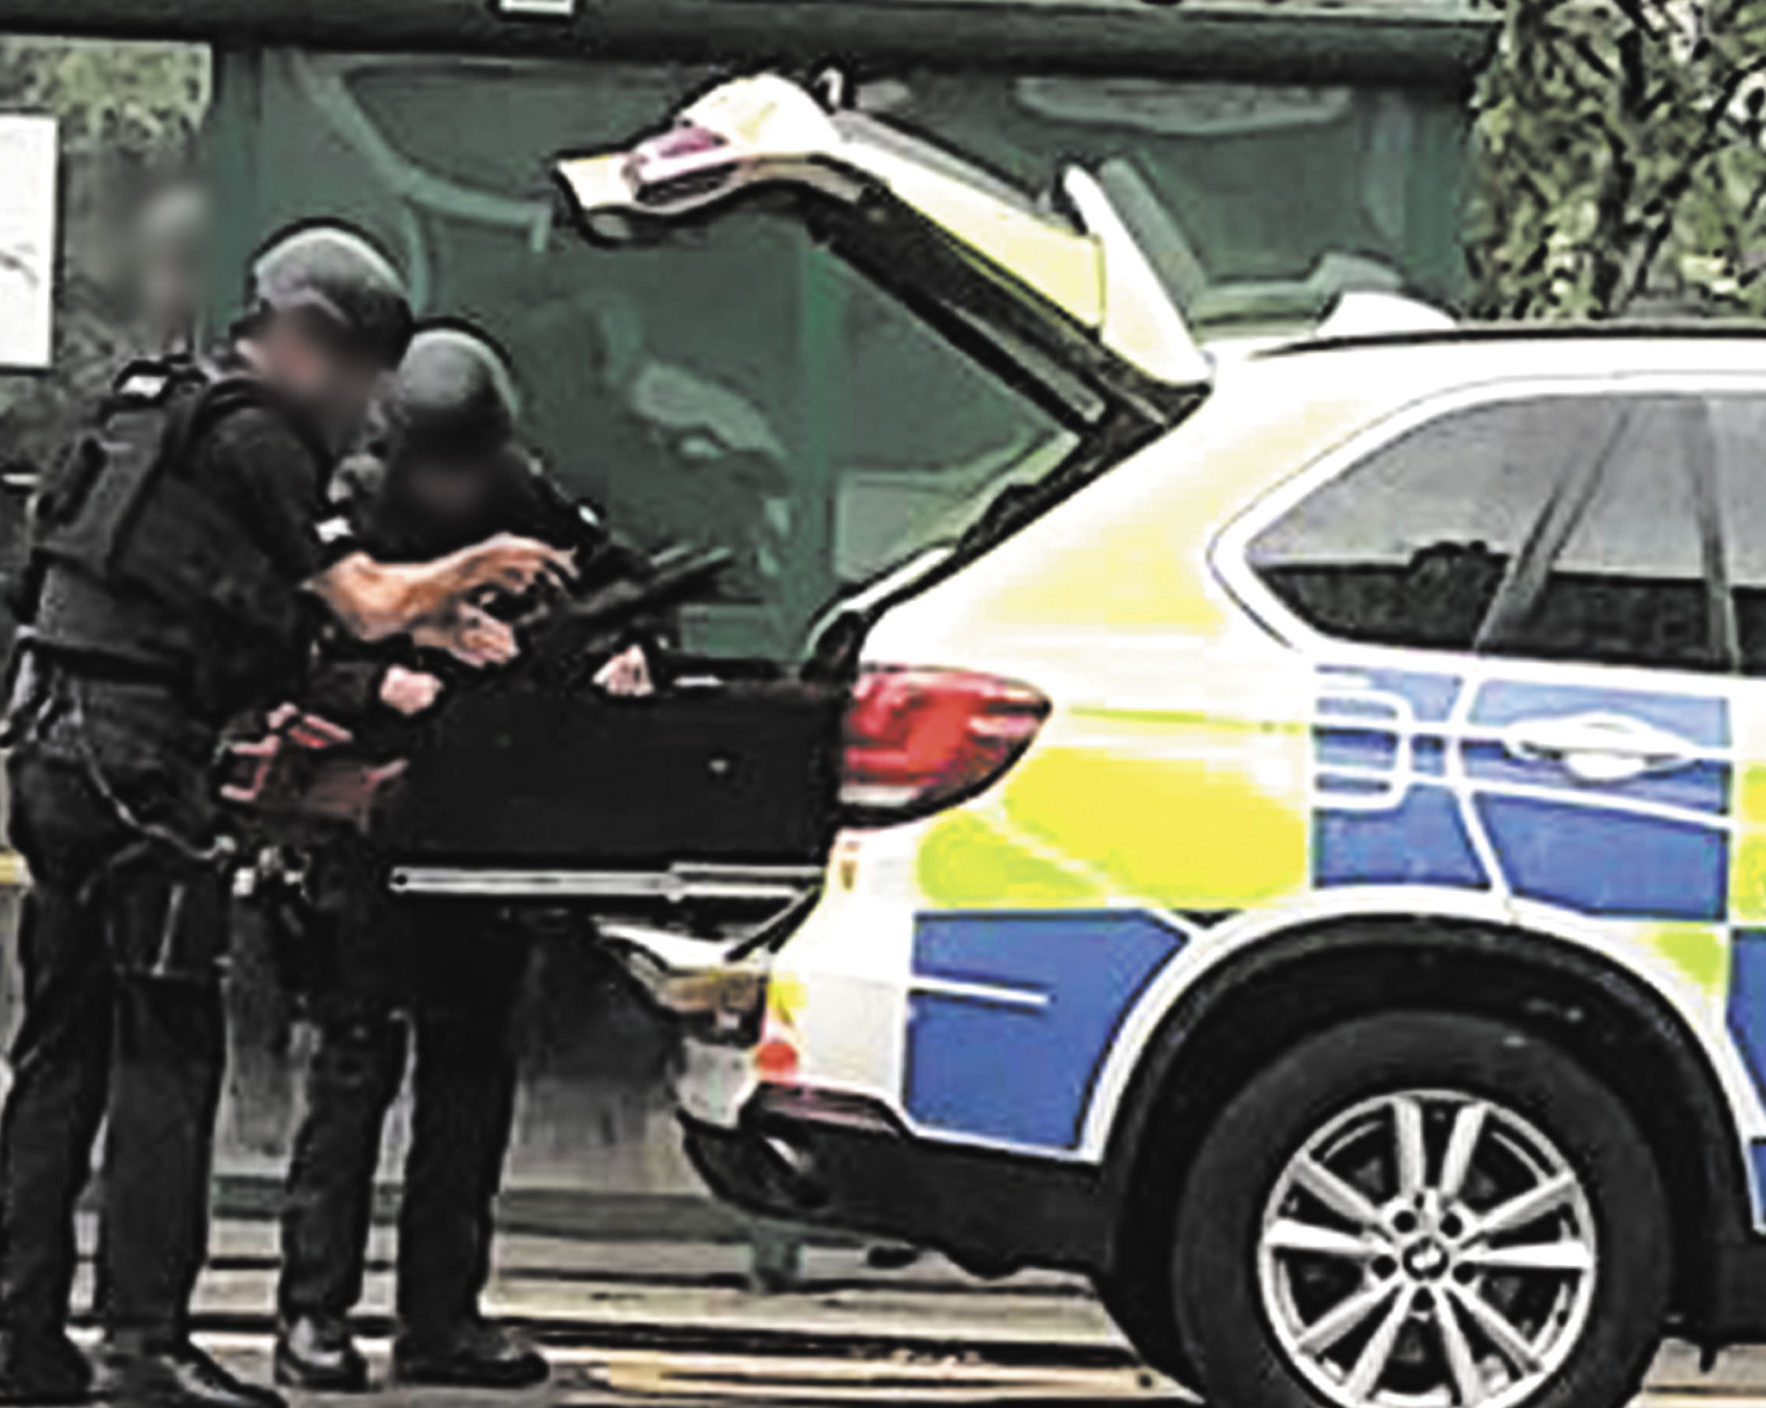 Police at the scene of the incident yesterday